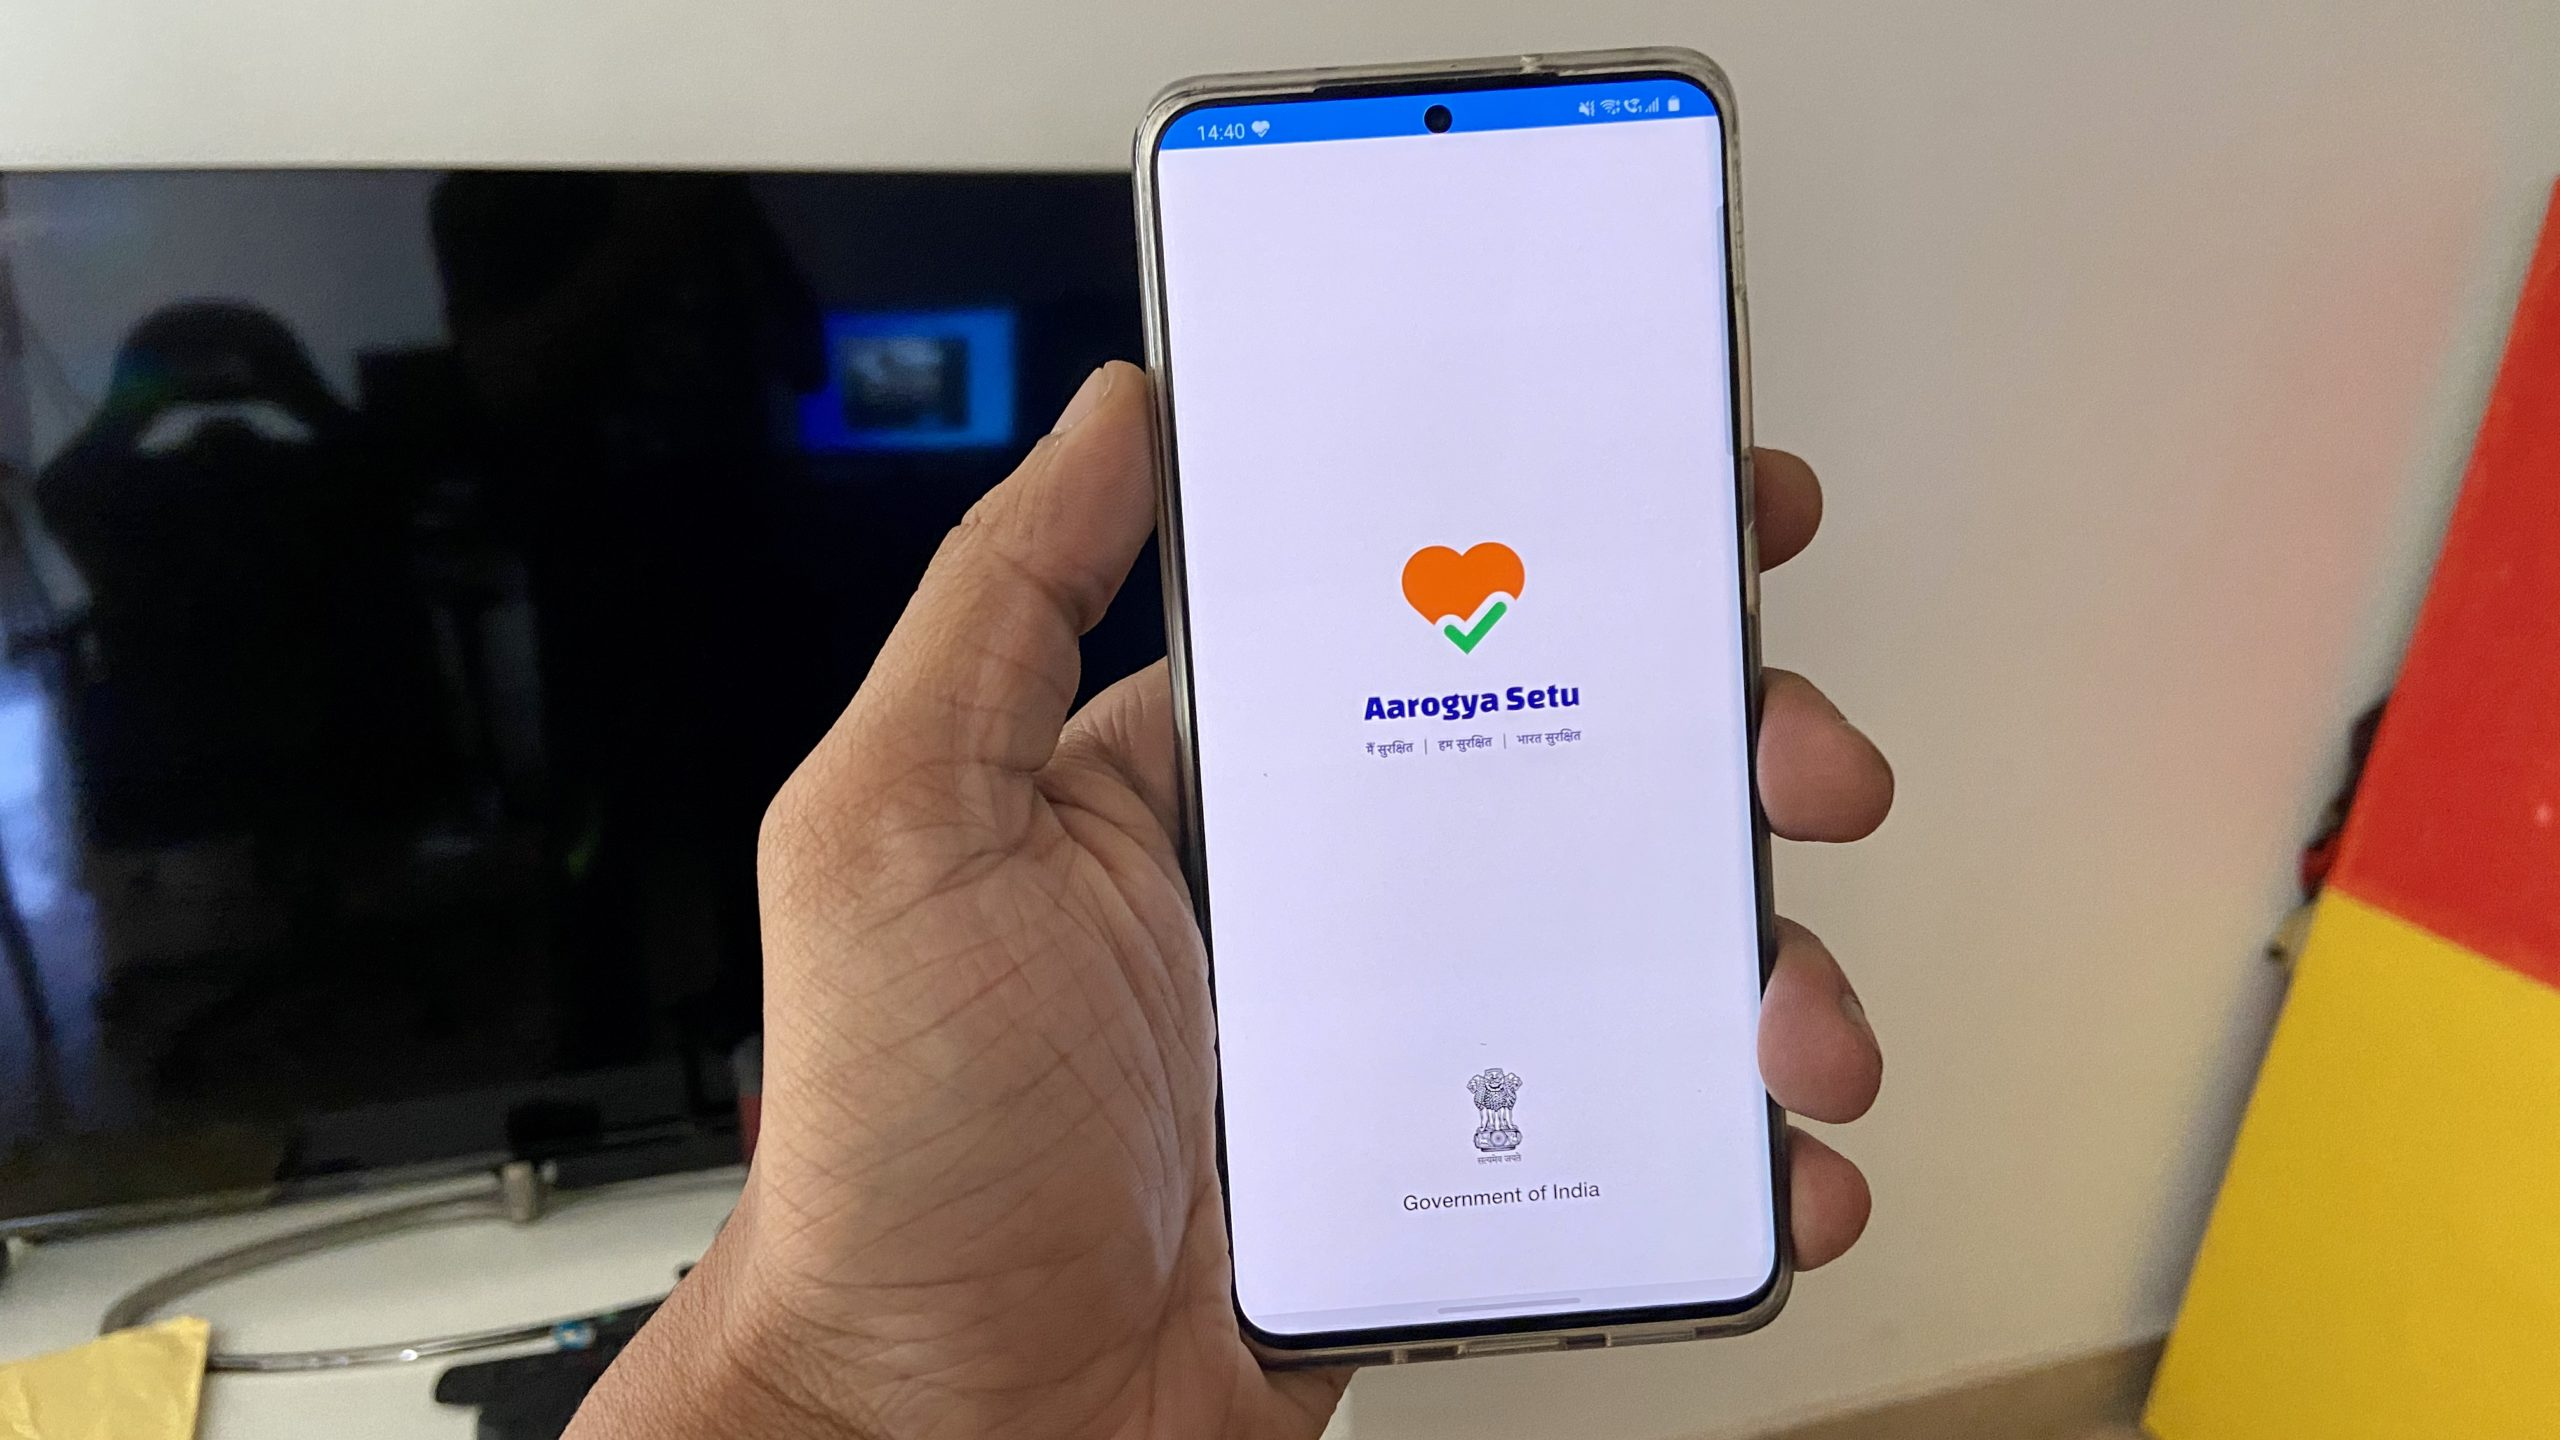 India acknowledges, but brushes aside, features-not-bugs in Aarogya Setu virus contact-tracing app